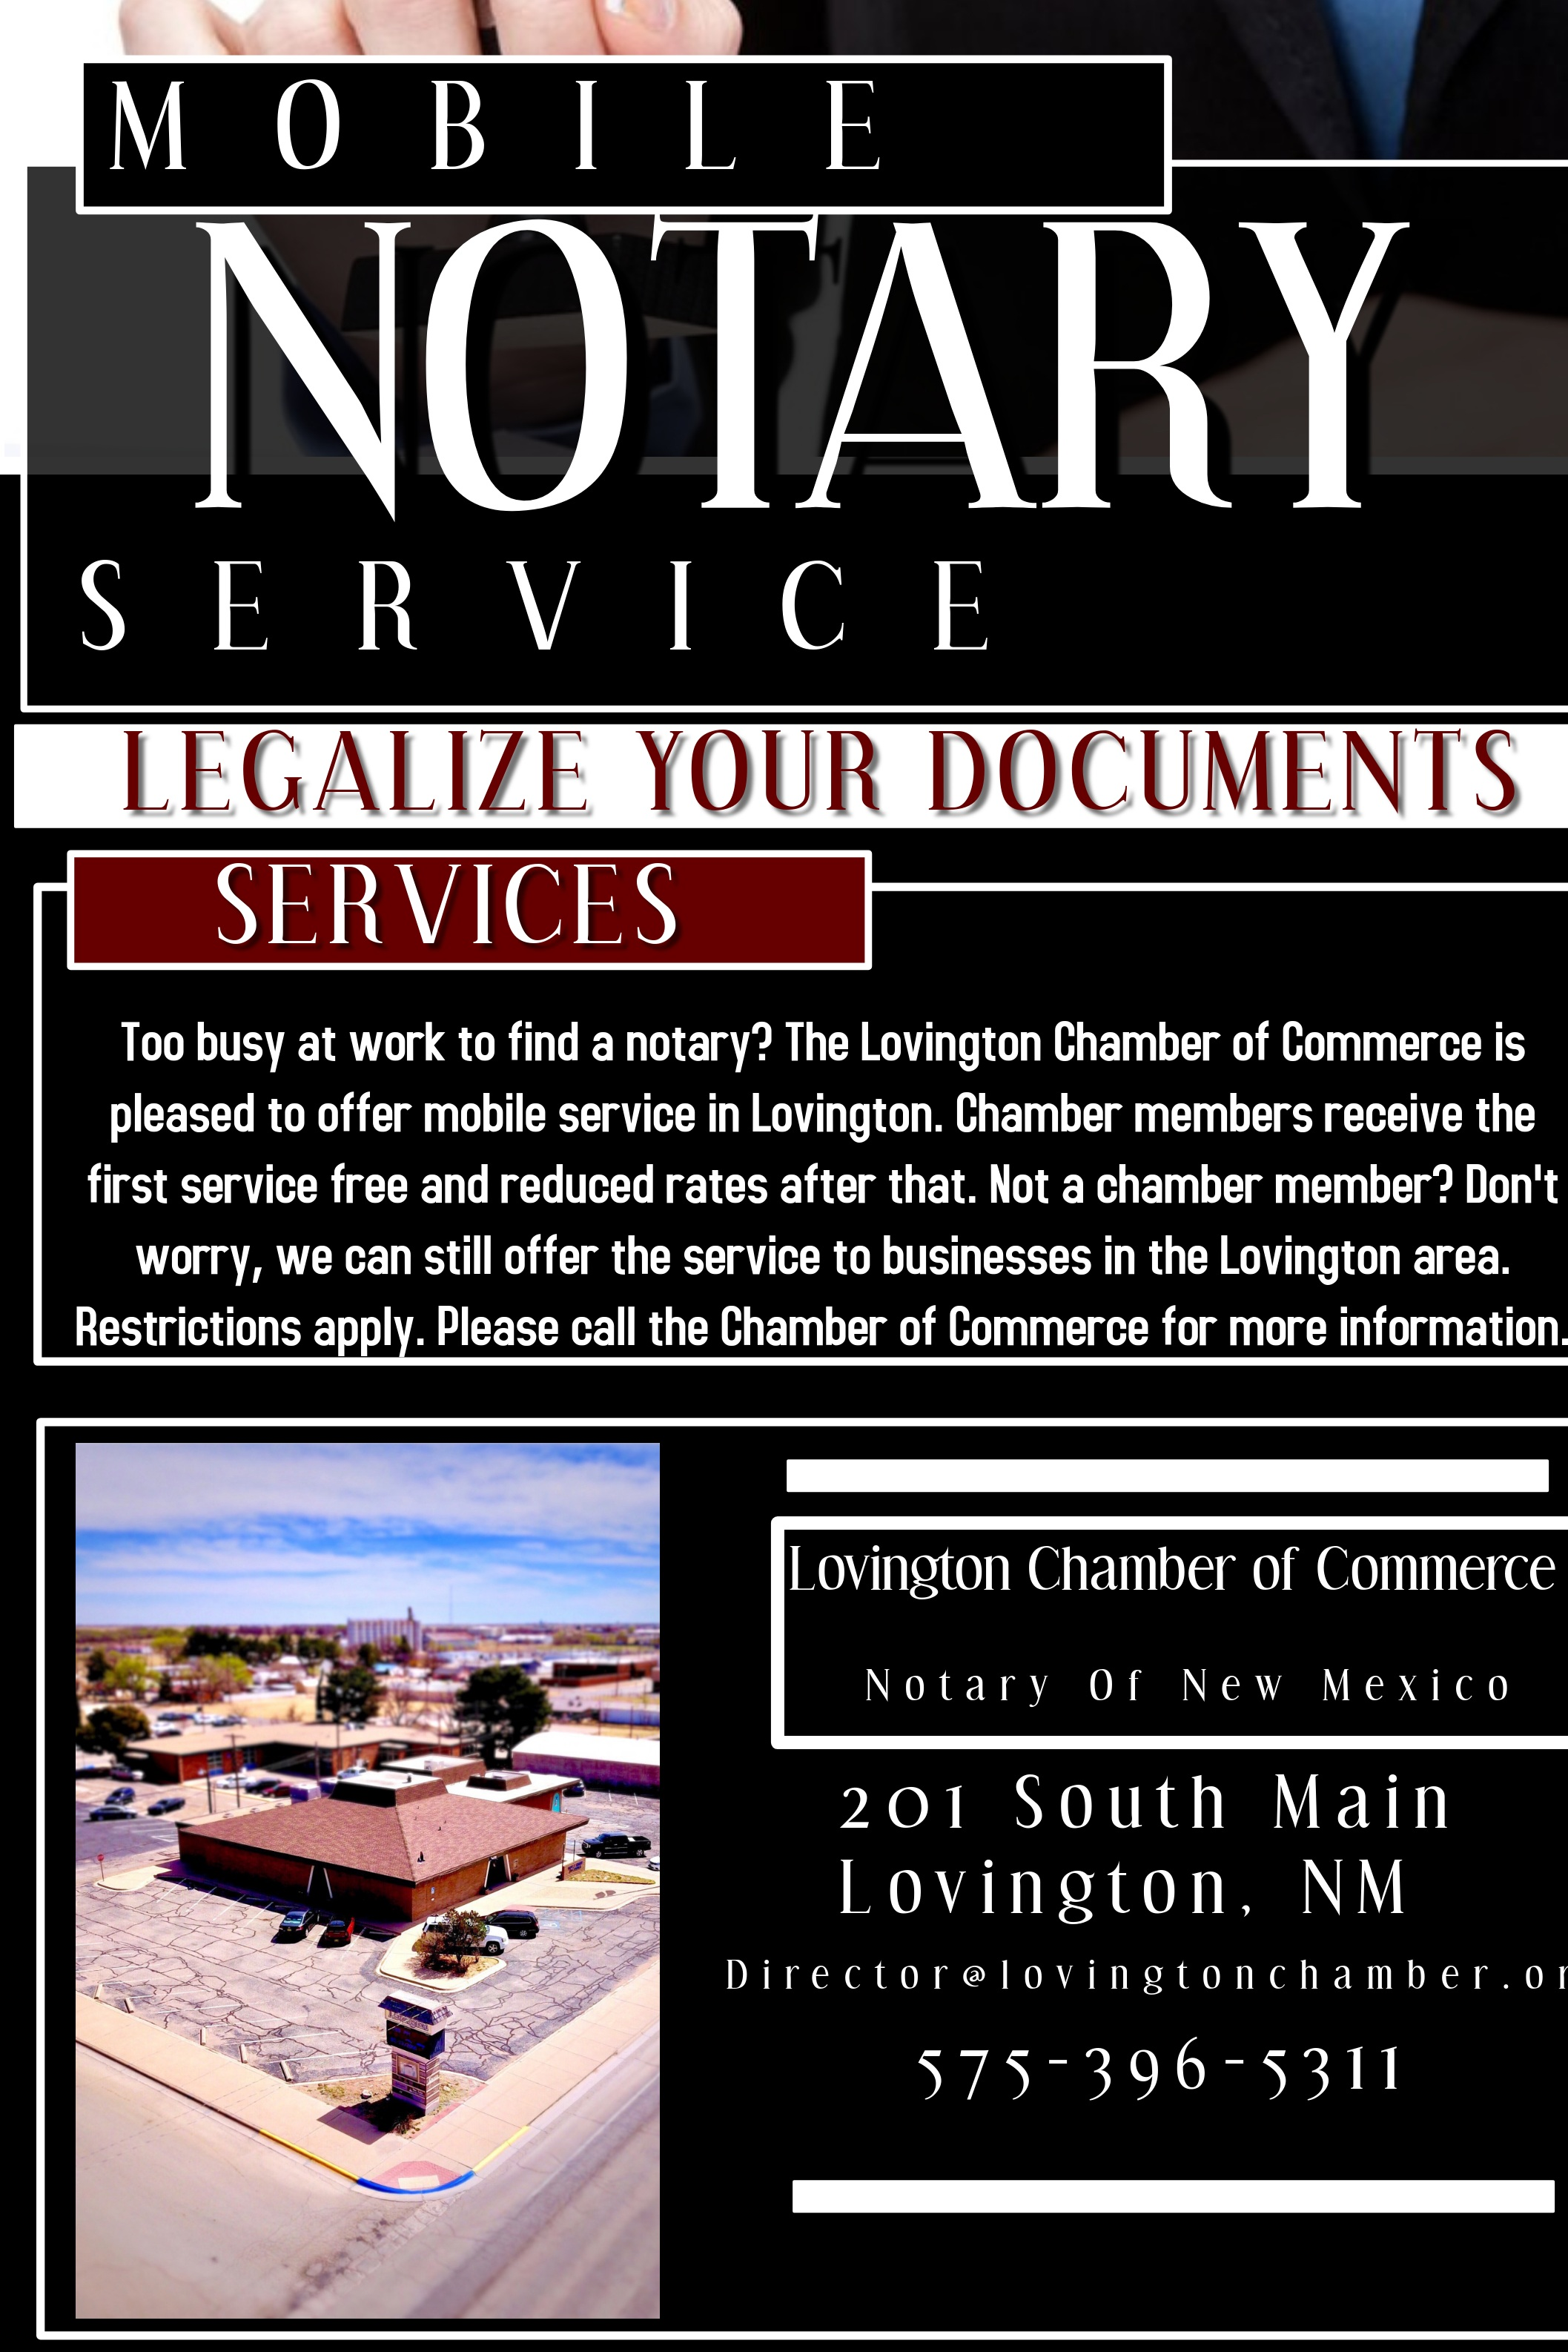 Copy+of+Notary.jpg